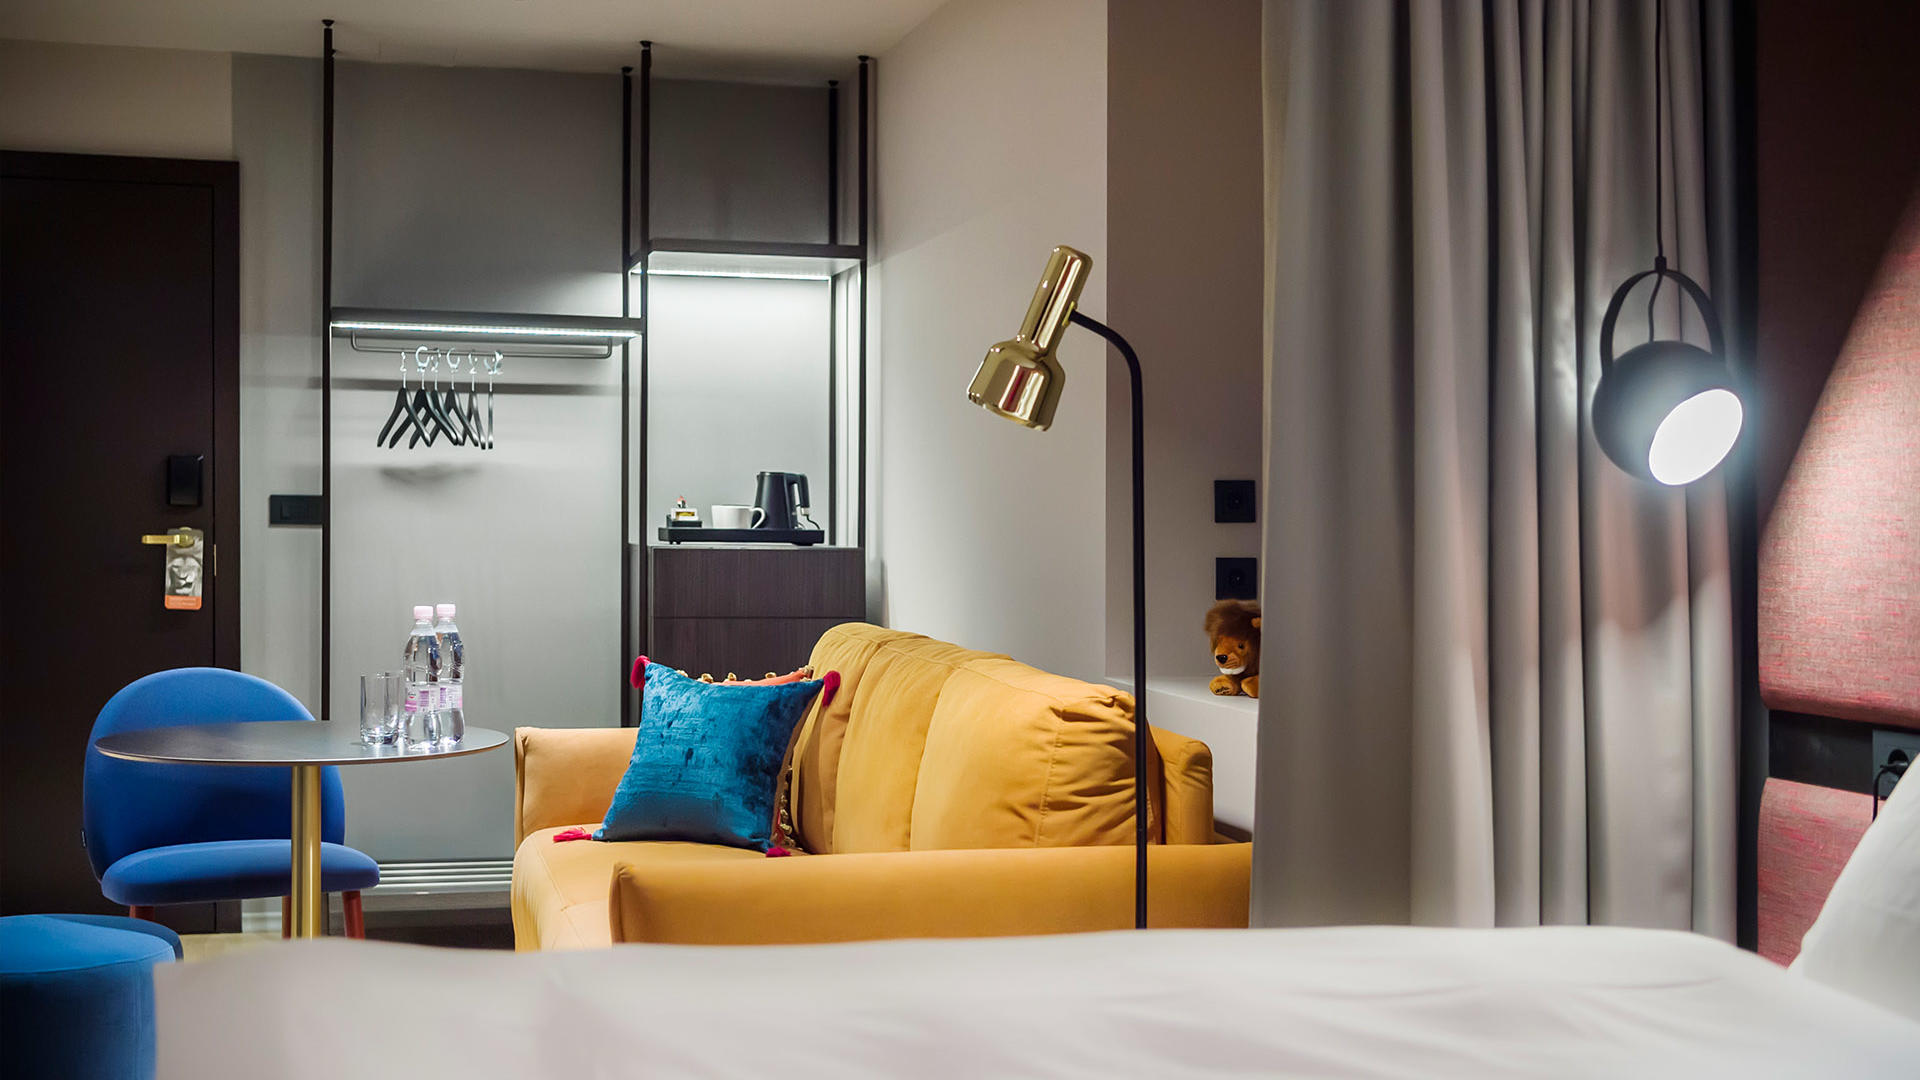 Premier Suite at Hotel LEV in Ljubljana